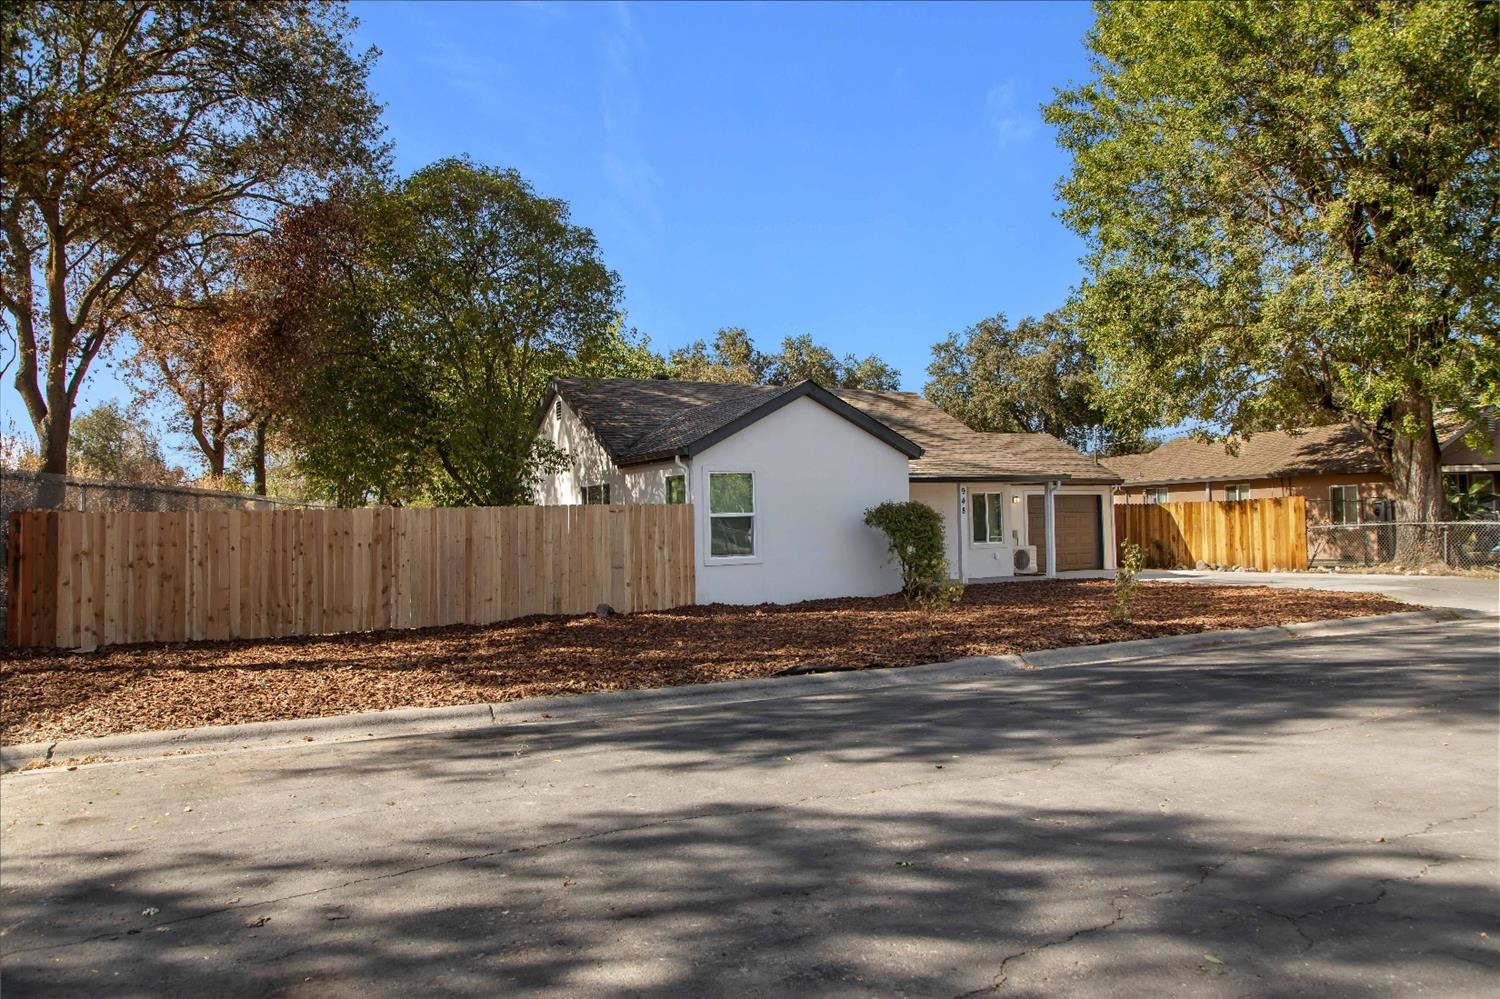 Photo of 948 Yolo Street, West Sacramento, CA 95605 (MLS # 20062801)